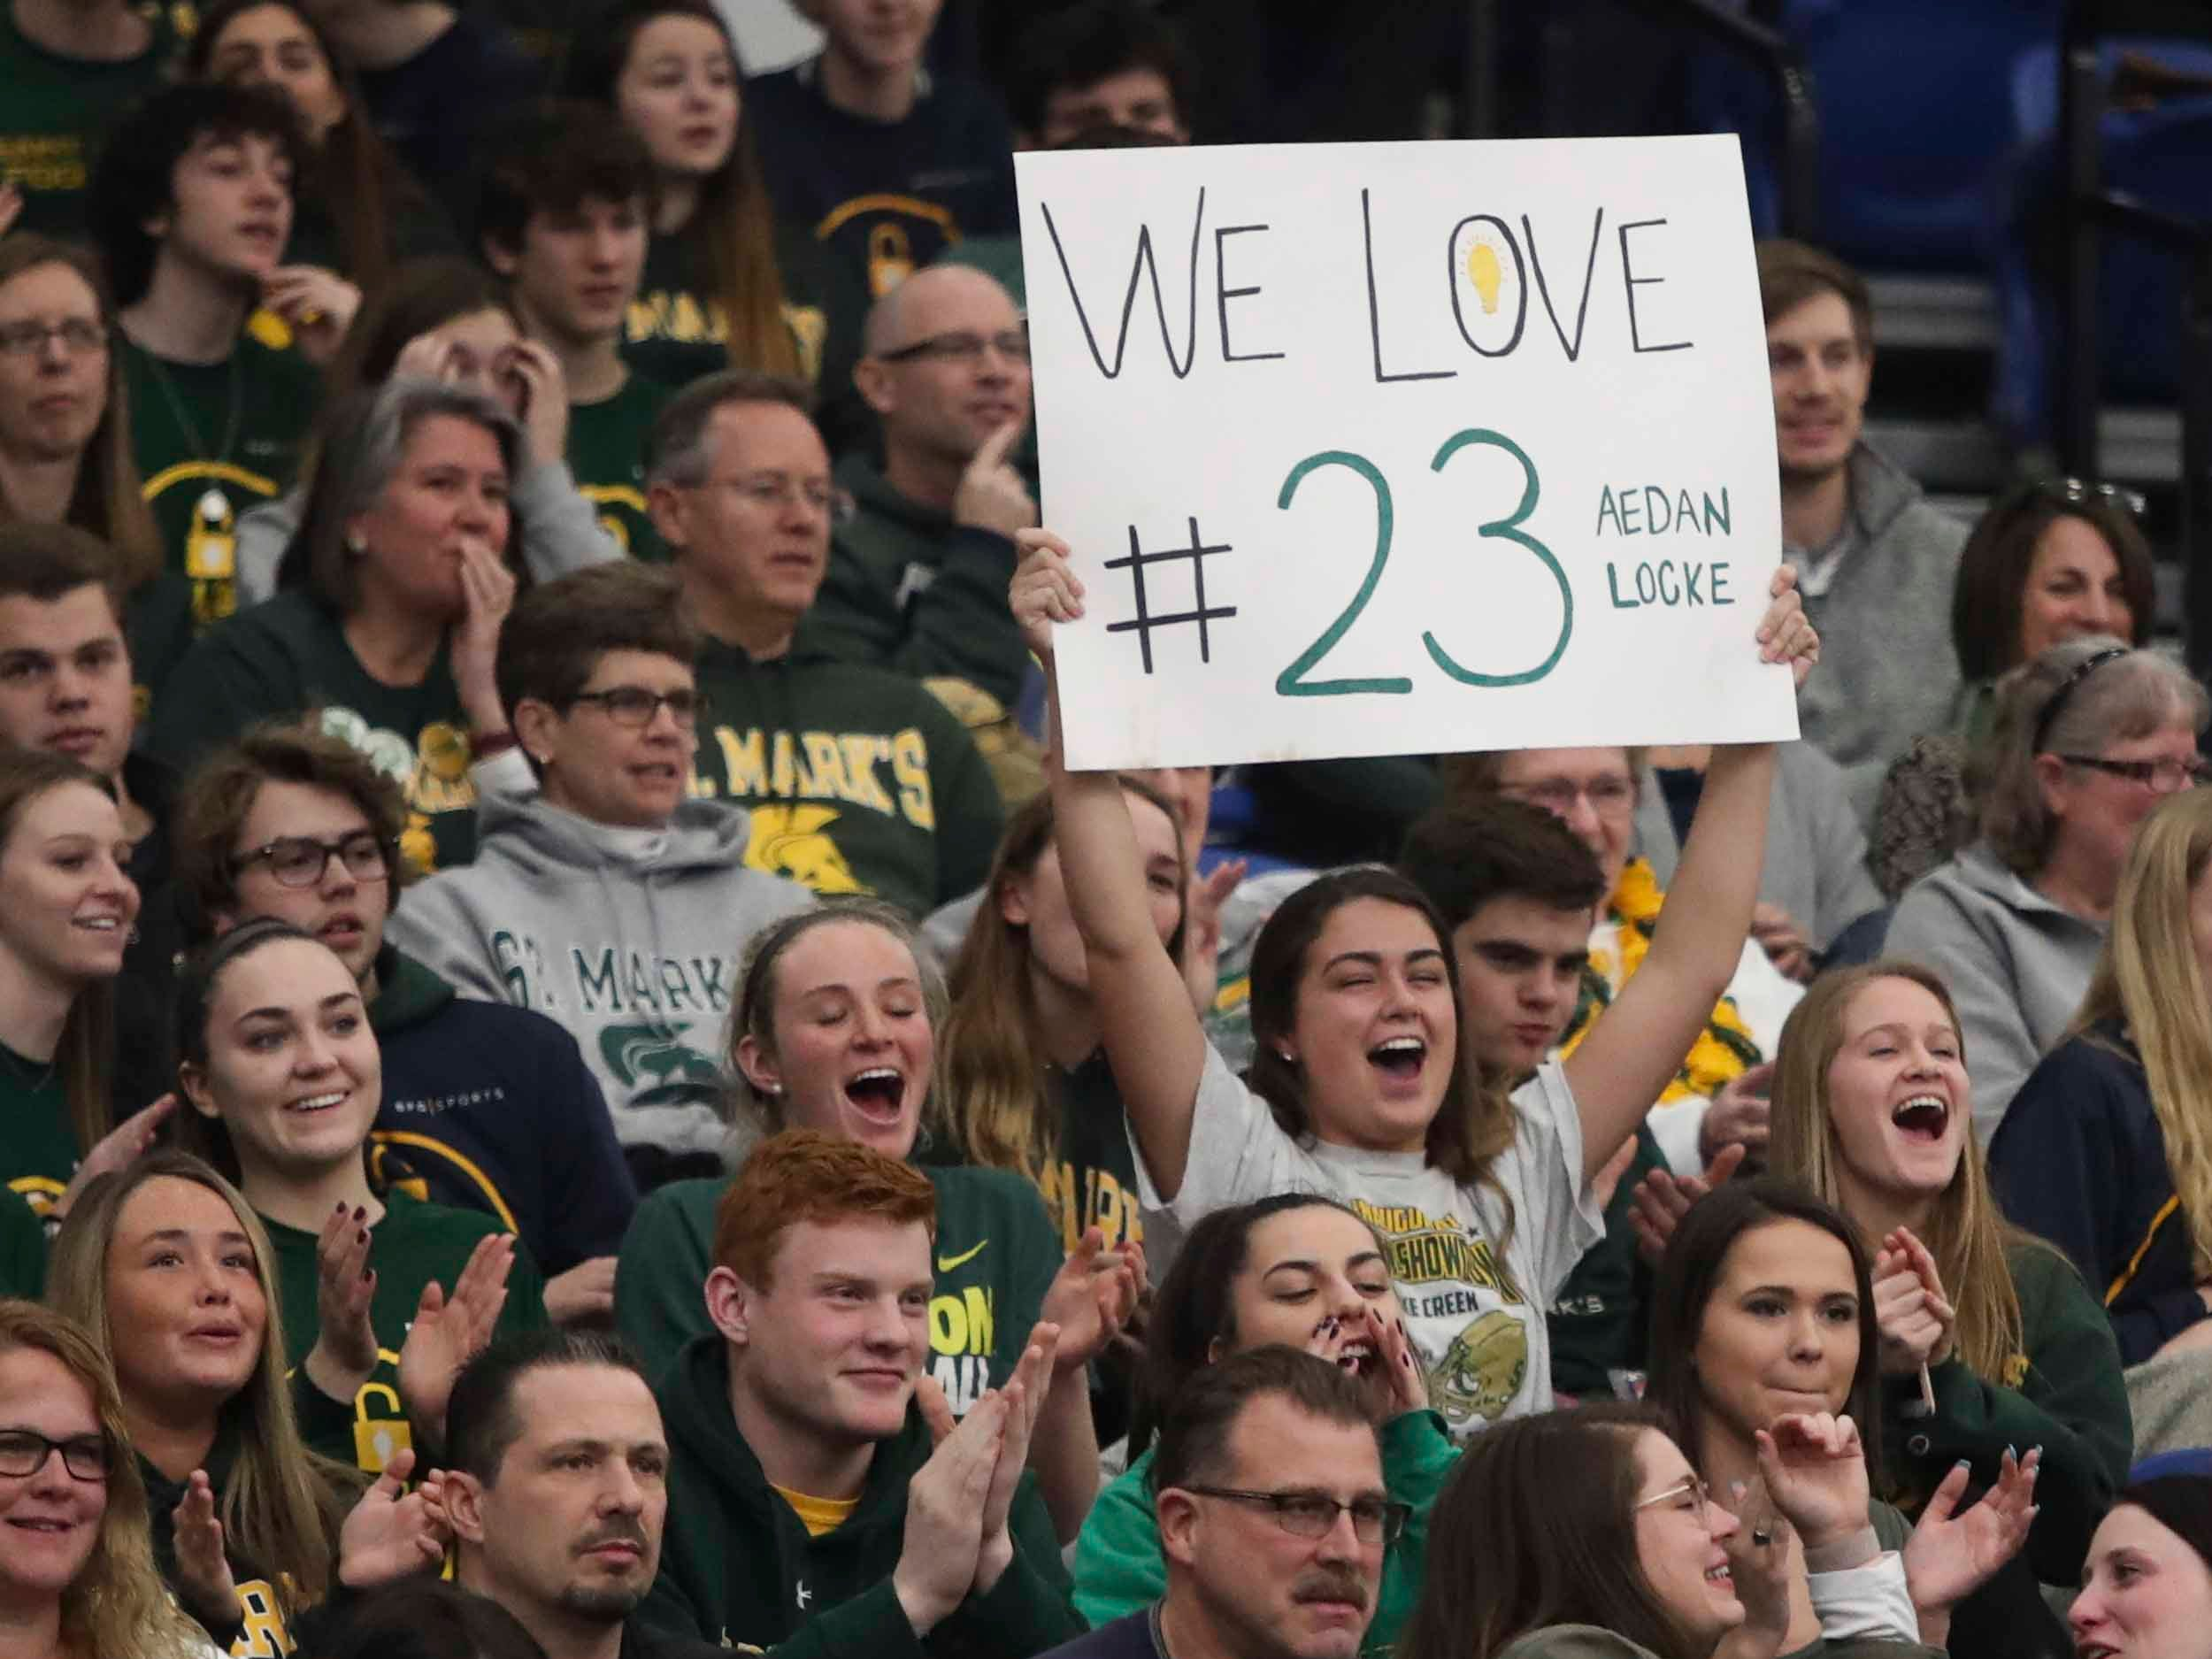 Supporters of Aeden Locke, brother of Sean Locke, cheer him during the SL24 Memorial Basketball Classic at the 76ers Fieldhouse in Wilmington Friday.